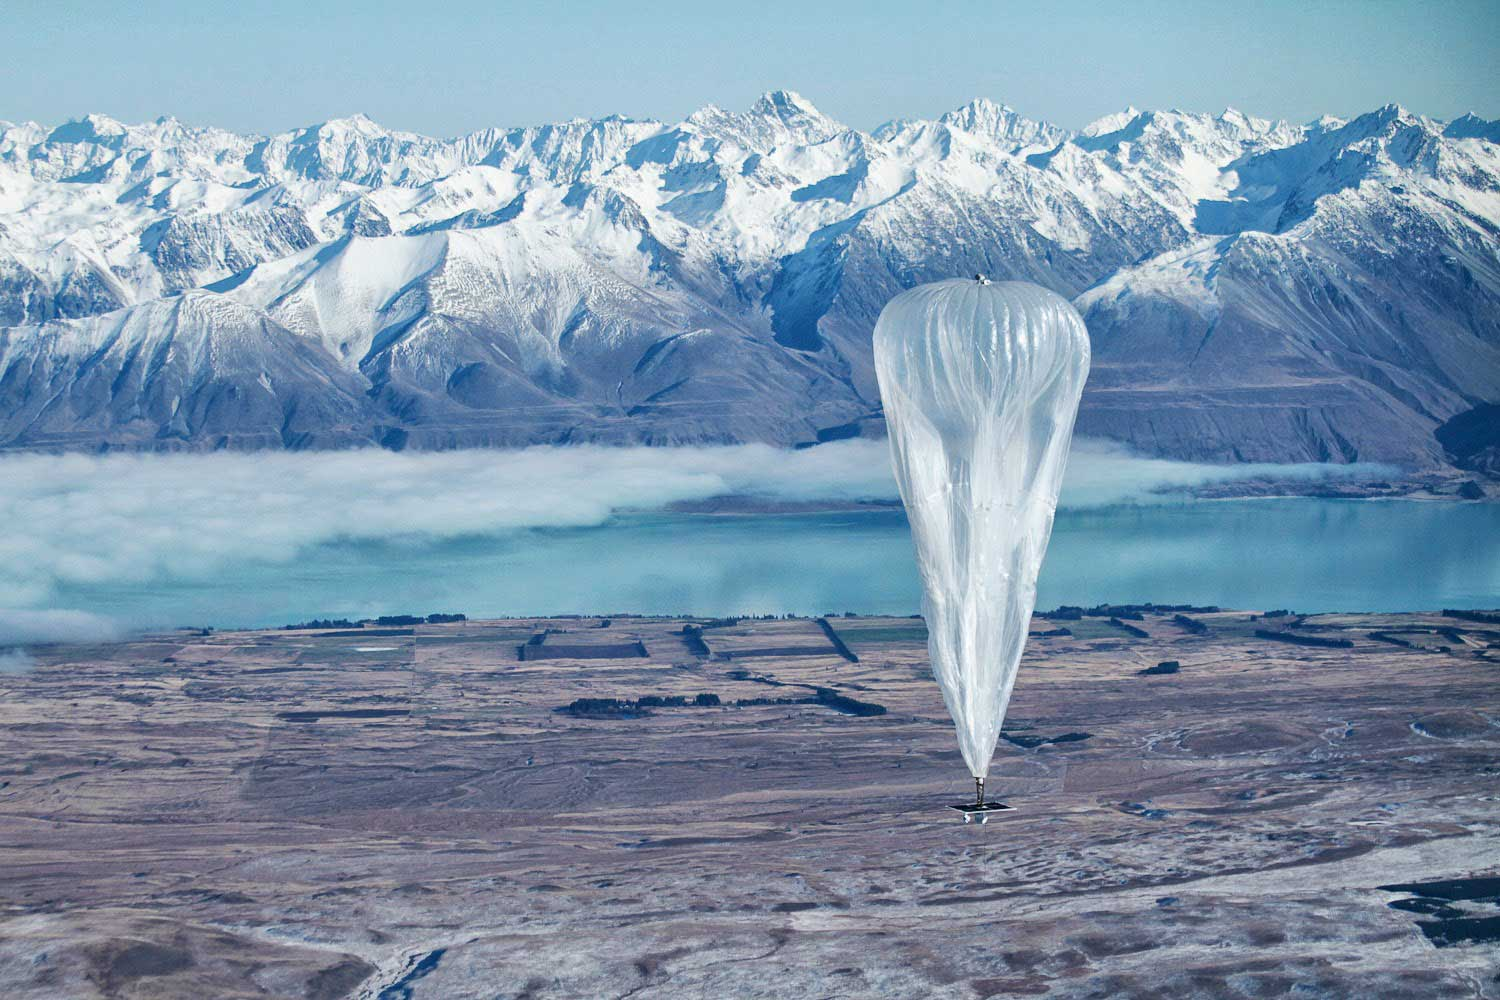 Google has been testing balloons which sail into the stratosphere and beam Internet down to Earth.